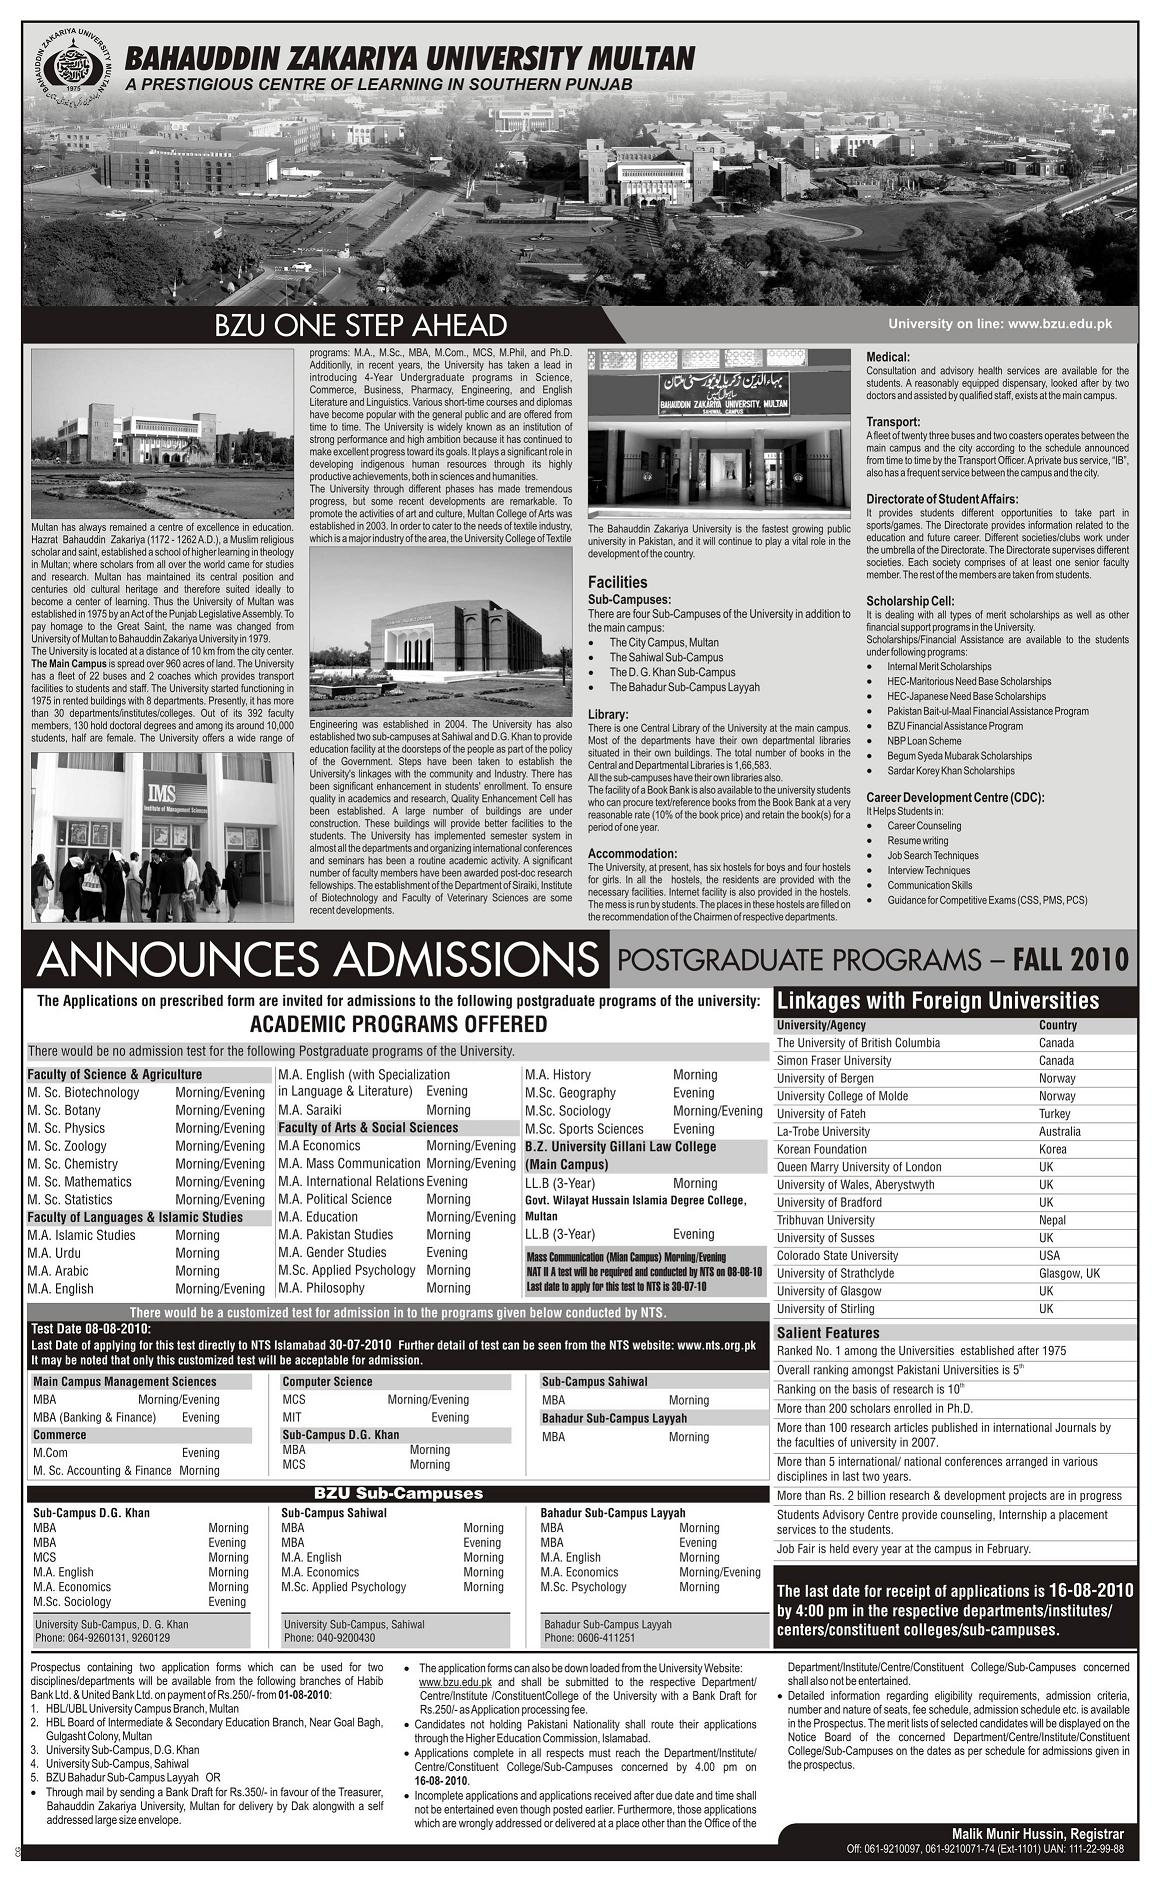 Admissions Open in BZU Multan for Postgraduate Programs 2010 - BZU ...